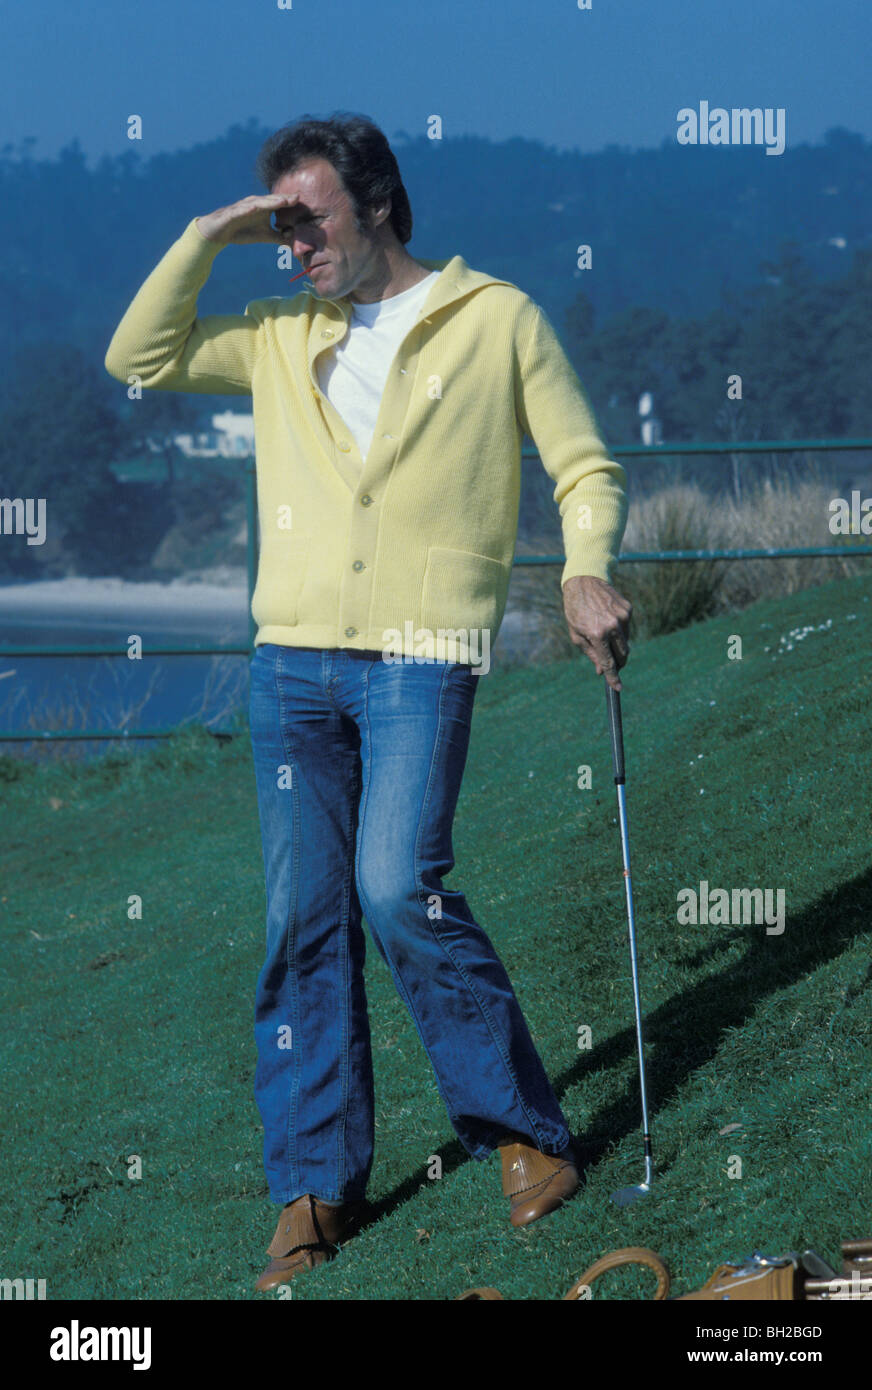 Movie star Clint Eastwood on golf course at Pebble Beach California in the late 1970s - Stock Image